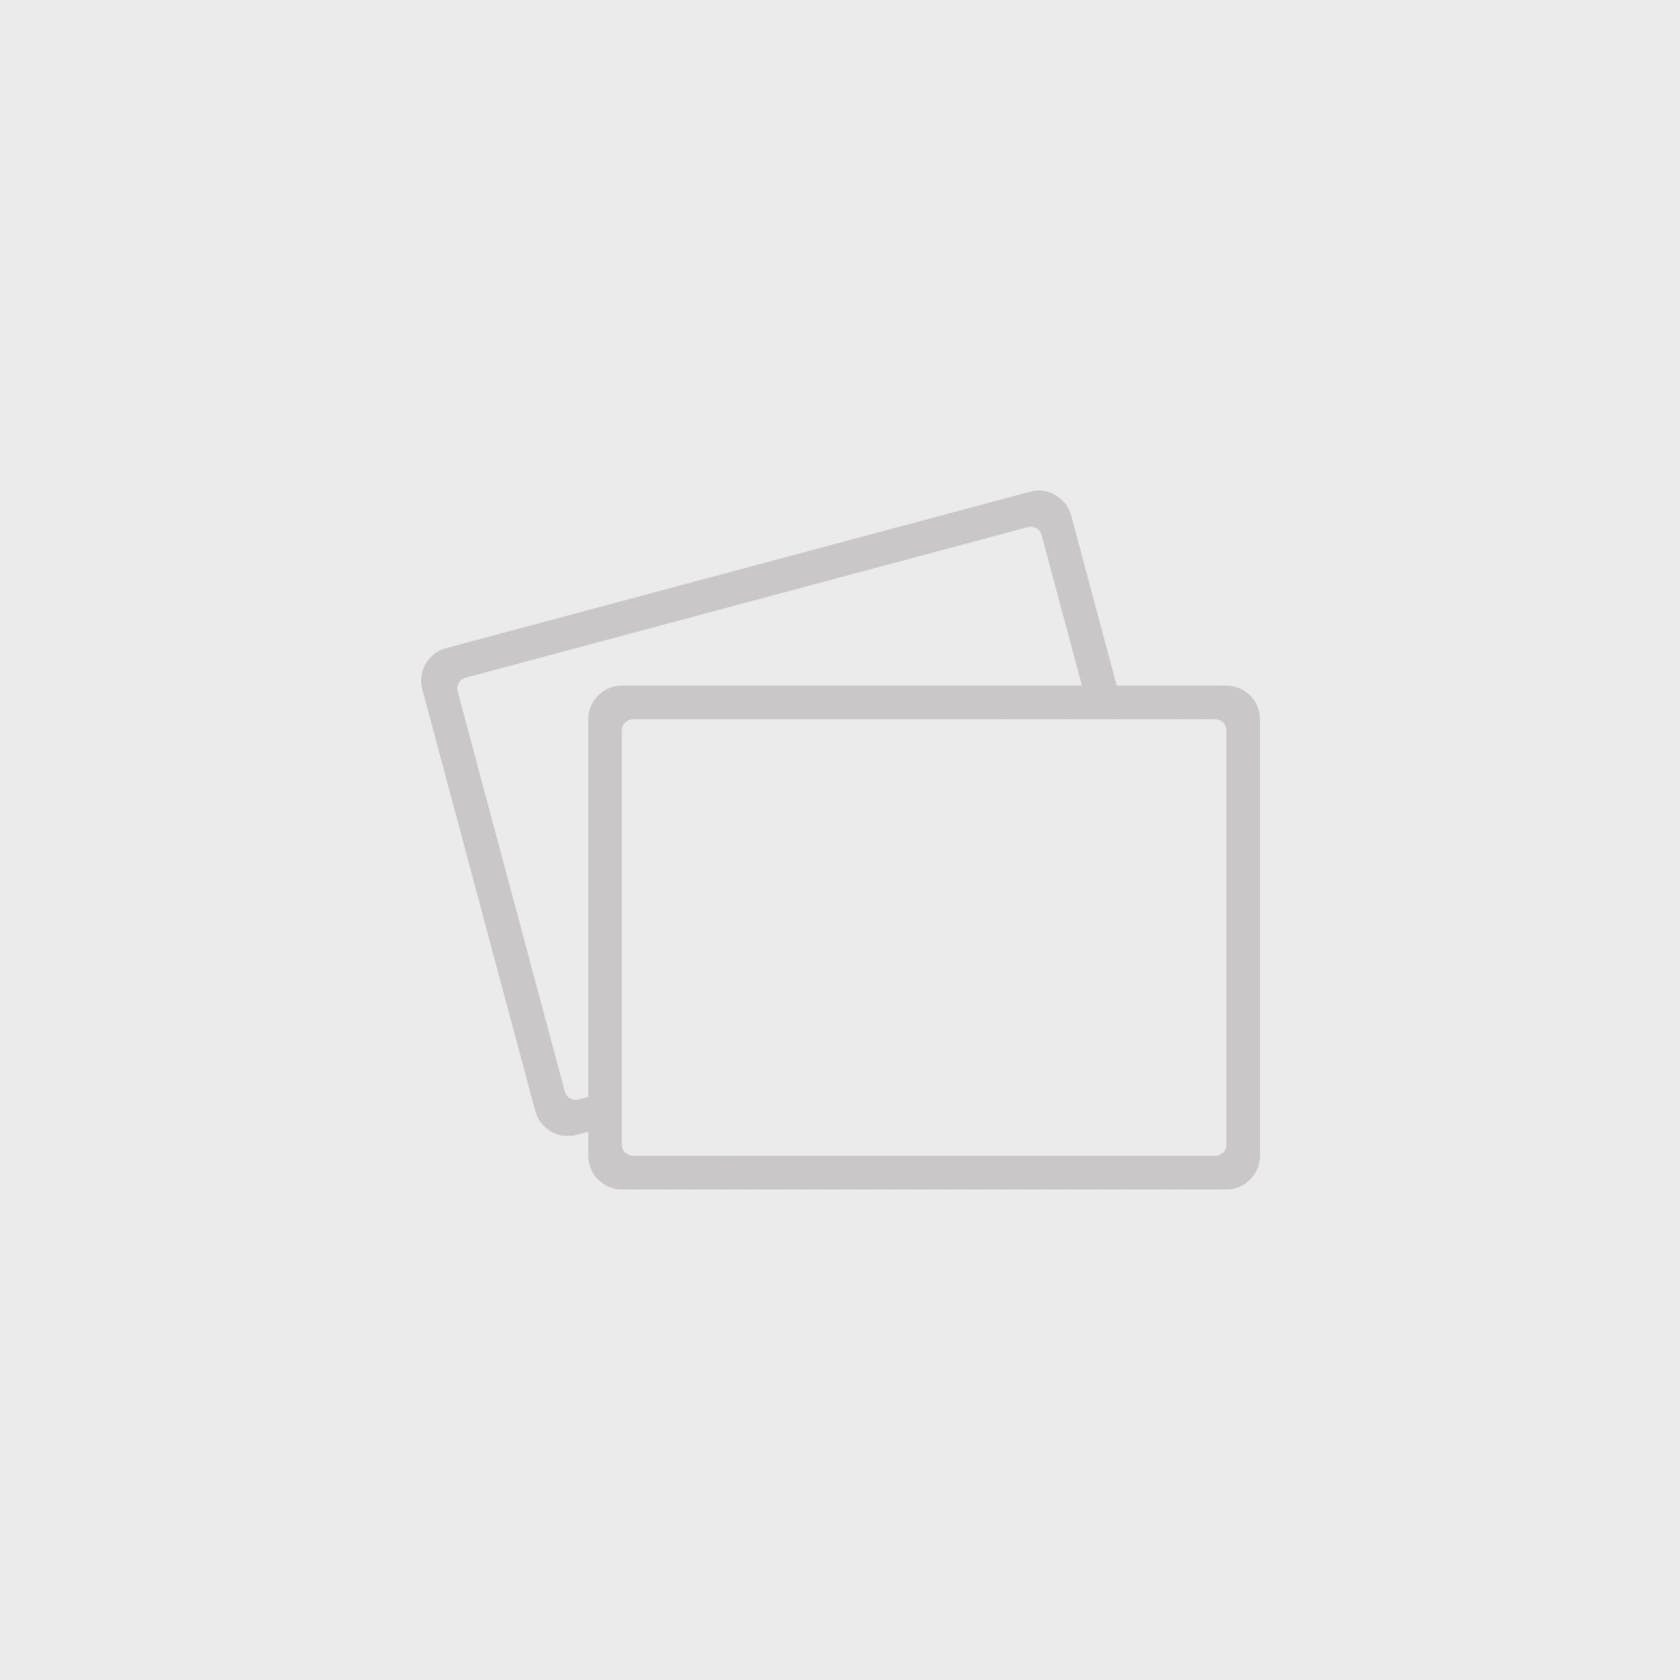 Floorlife Wembley Collection Light Pine Klik PVC / Click 5397501119 ( Ambiant Estada Light Pine )